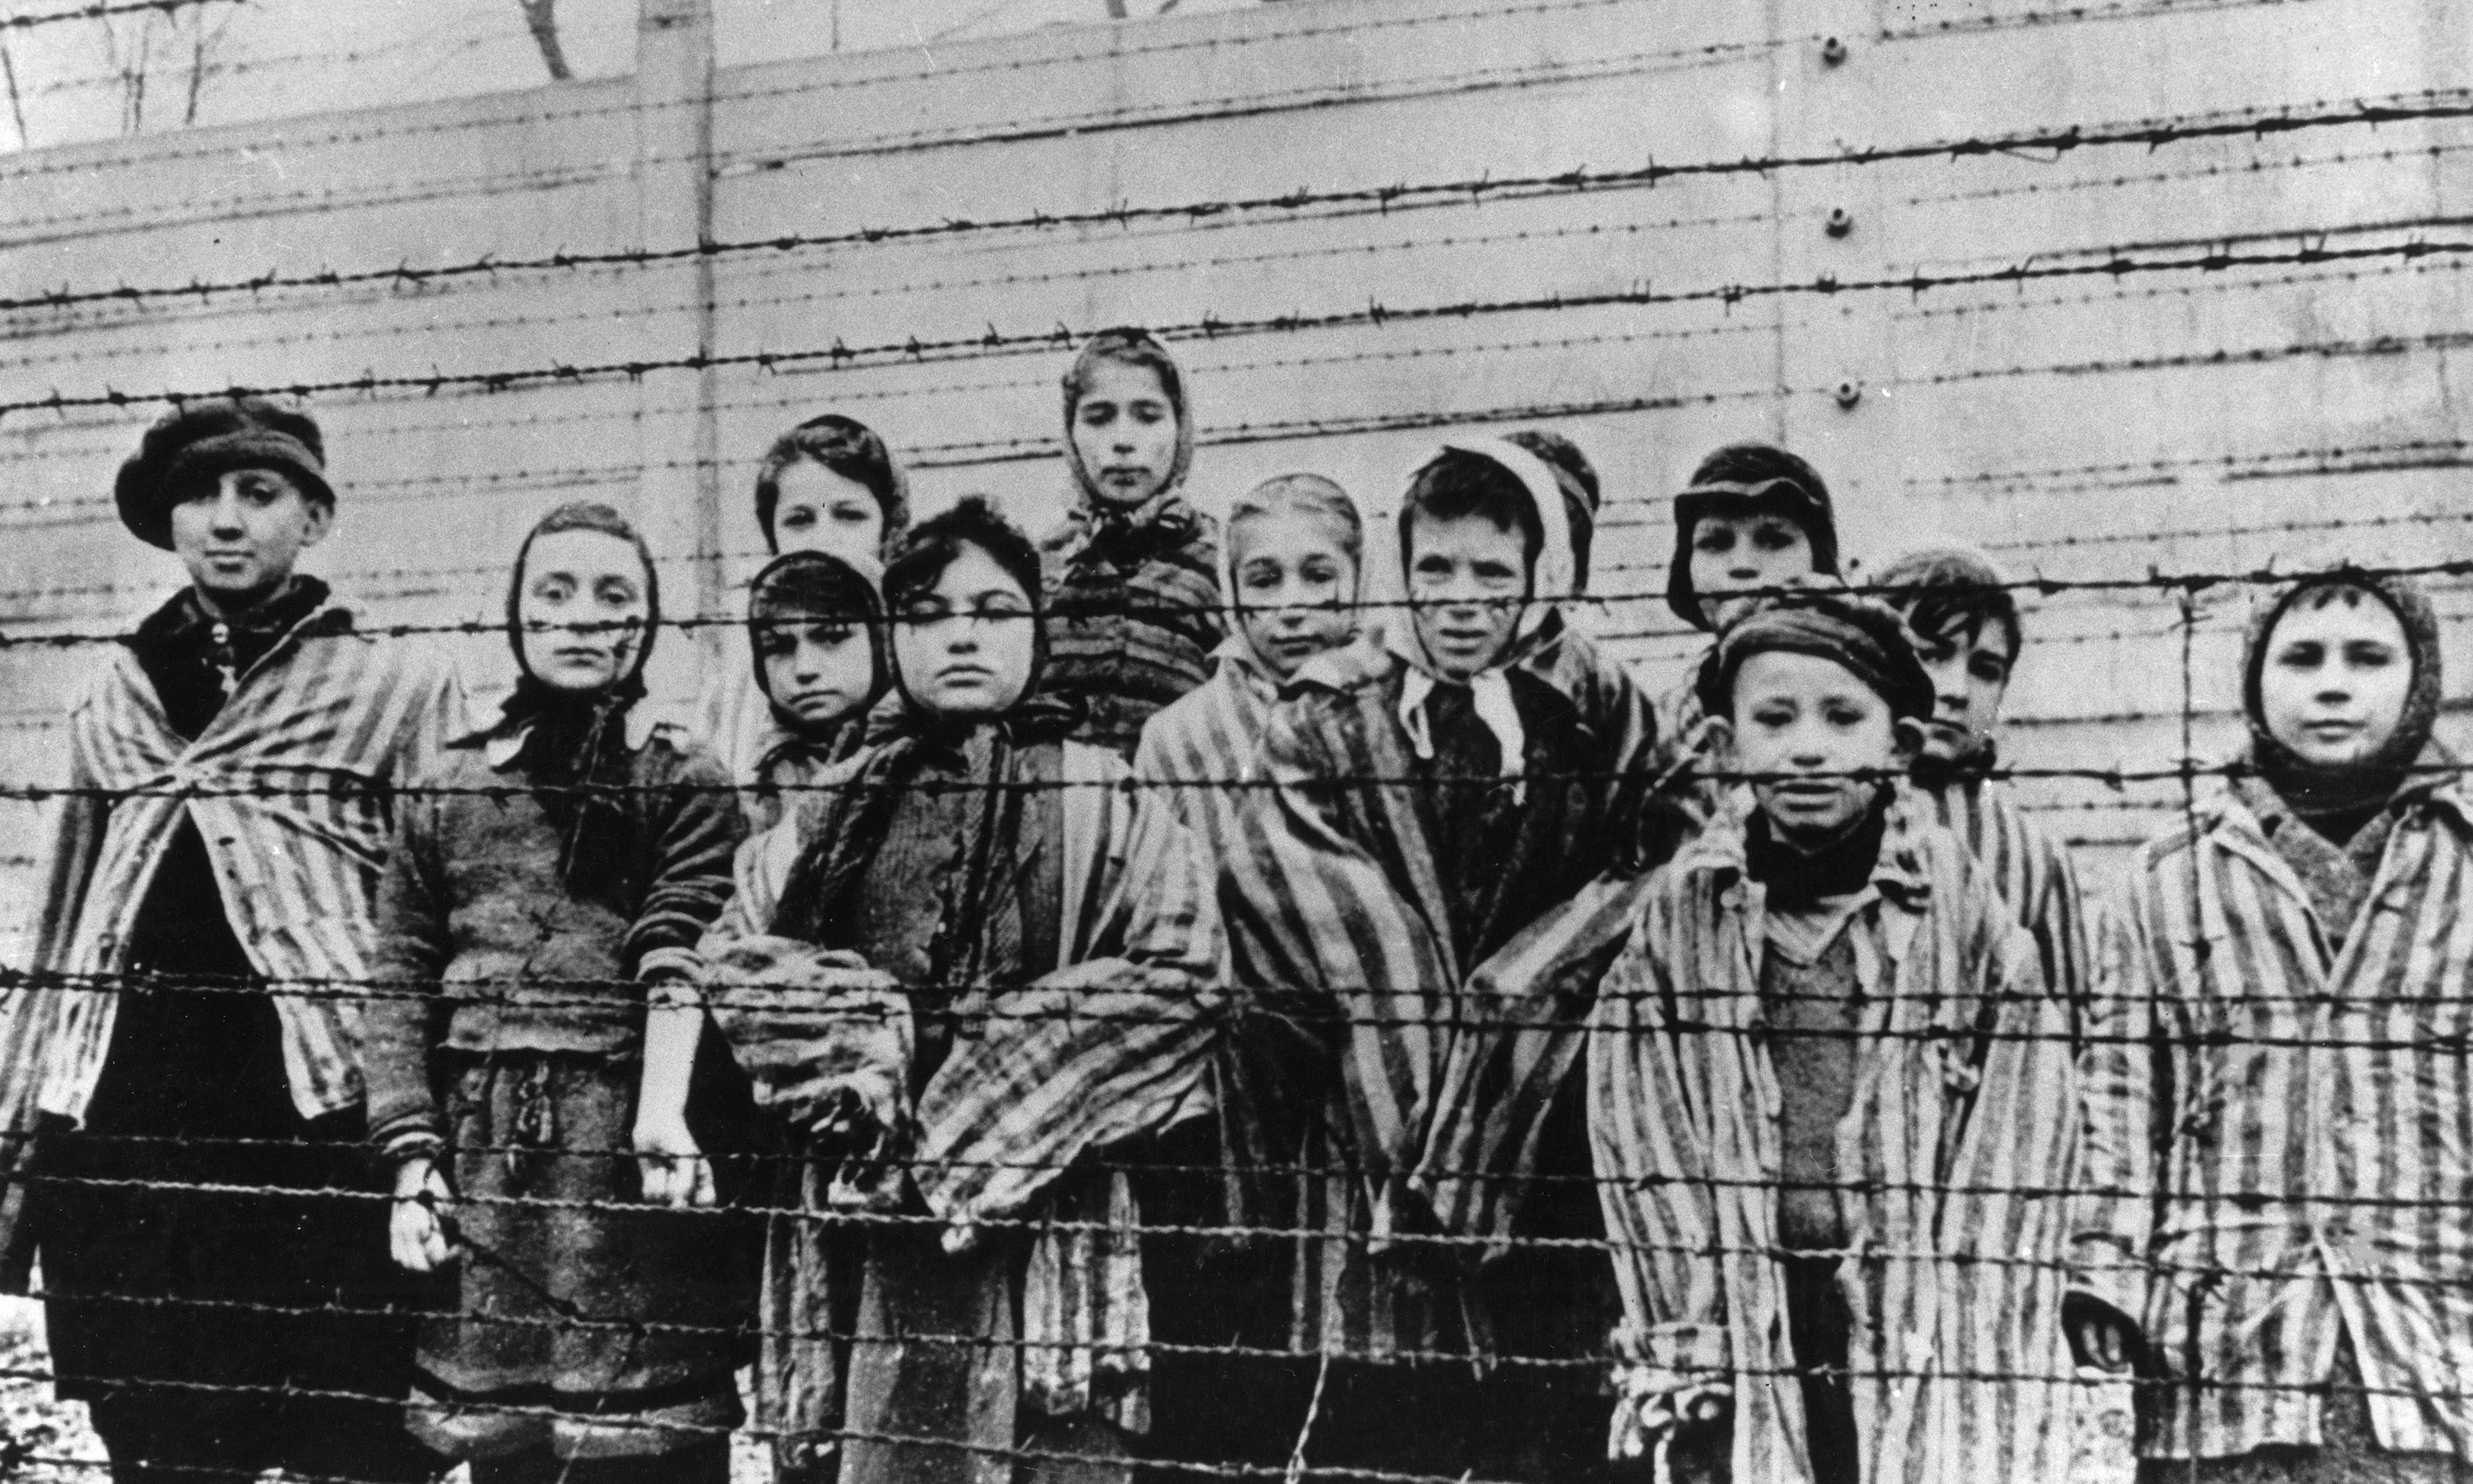 Study of Holocaust survivors finds trauma passed on to children's genes